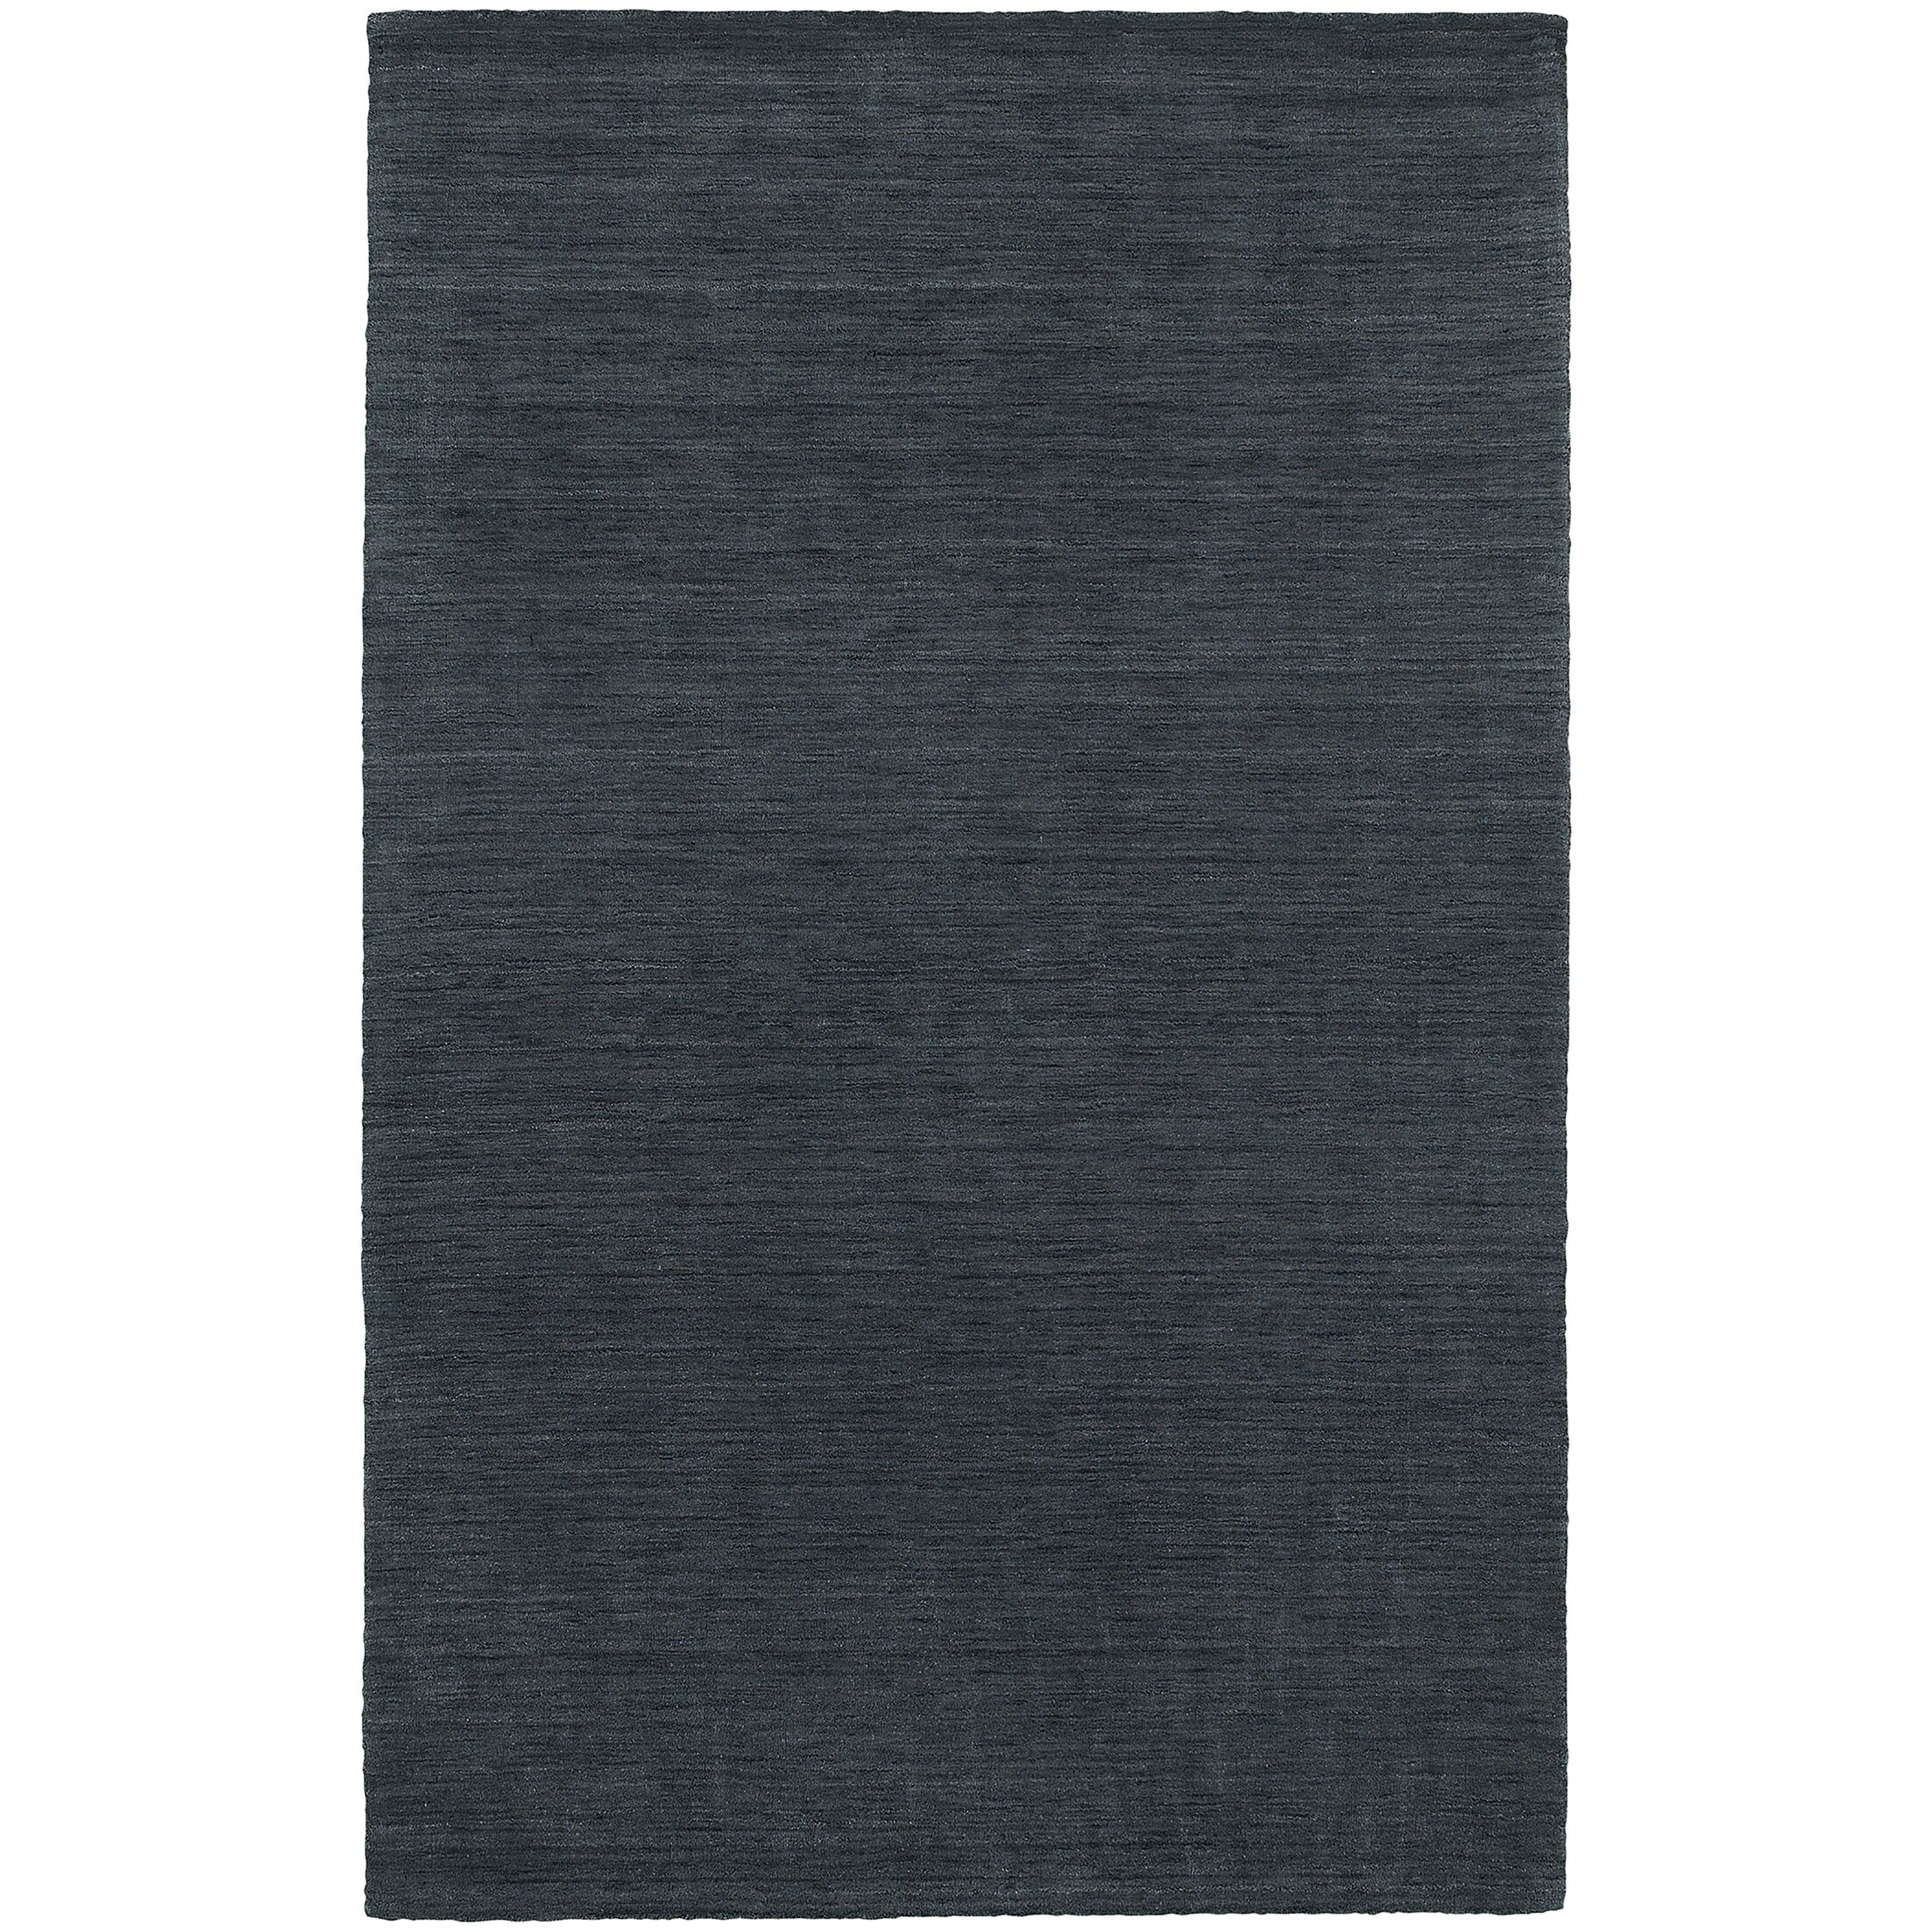 Barrientos Hand-Woven Heathered Navy Area Rug Rug Size: Rectangle 8' x 10'